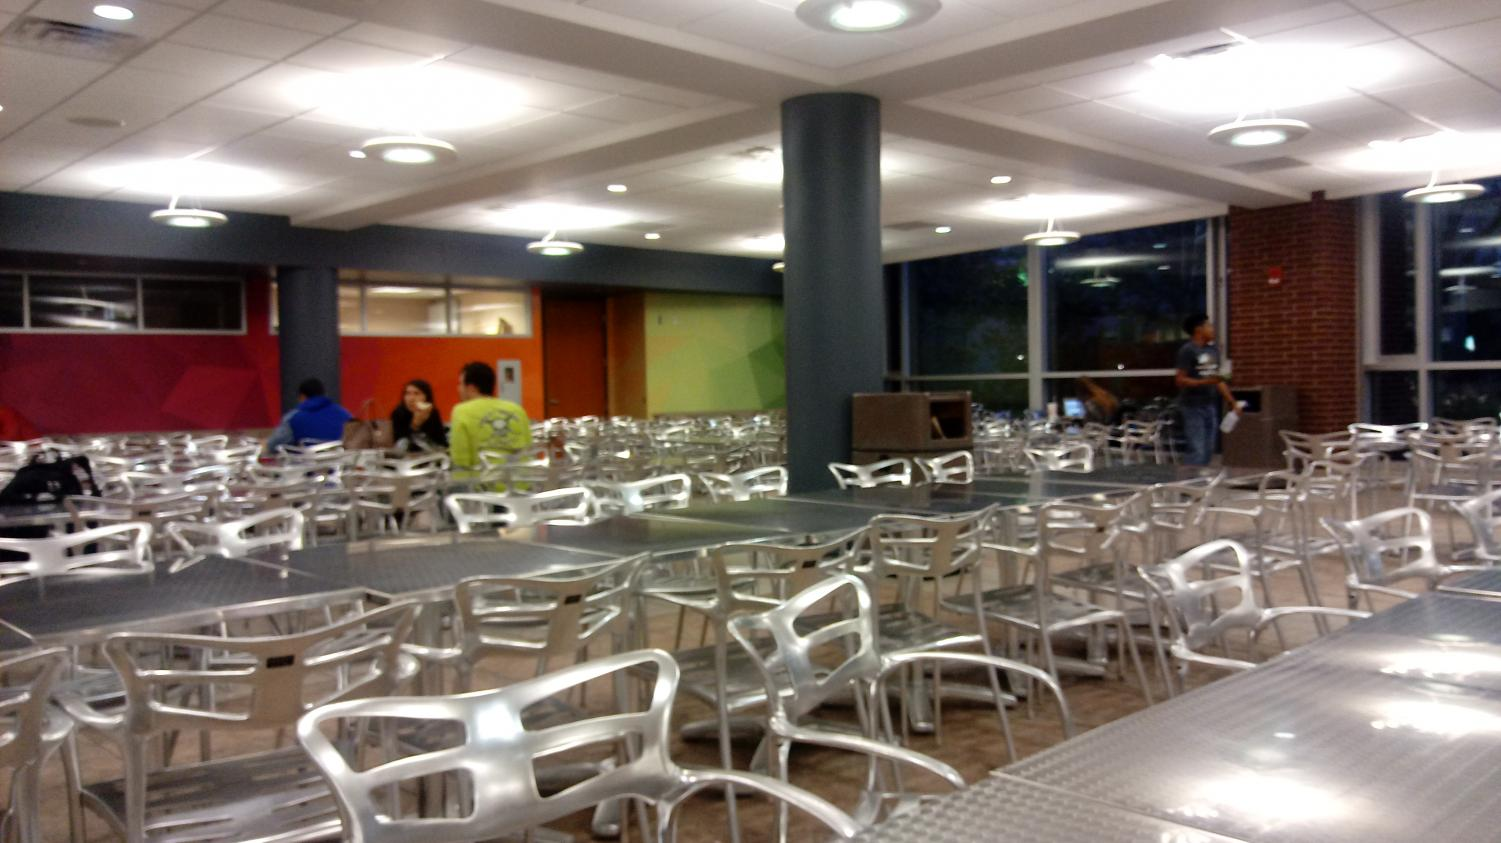 A few students spend time in the Taber Student Union.